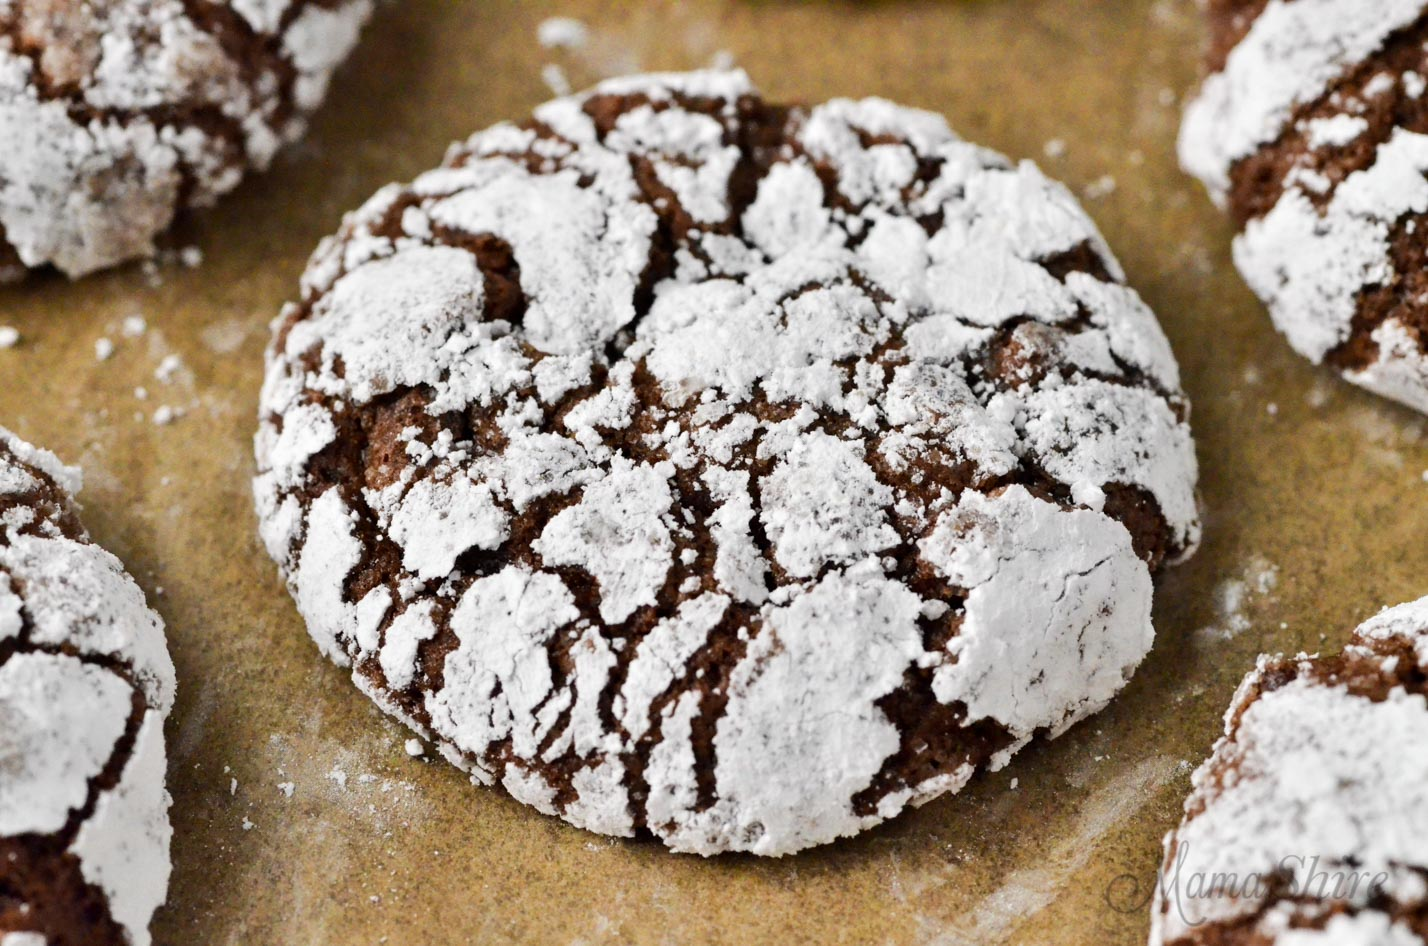 Chocolate cookie with powdered sugar.